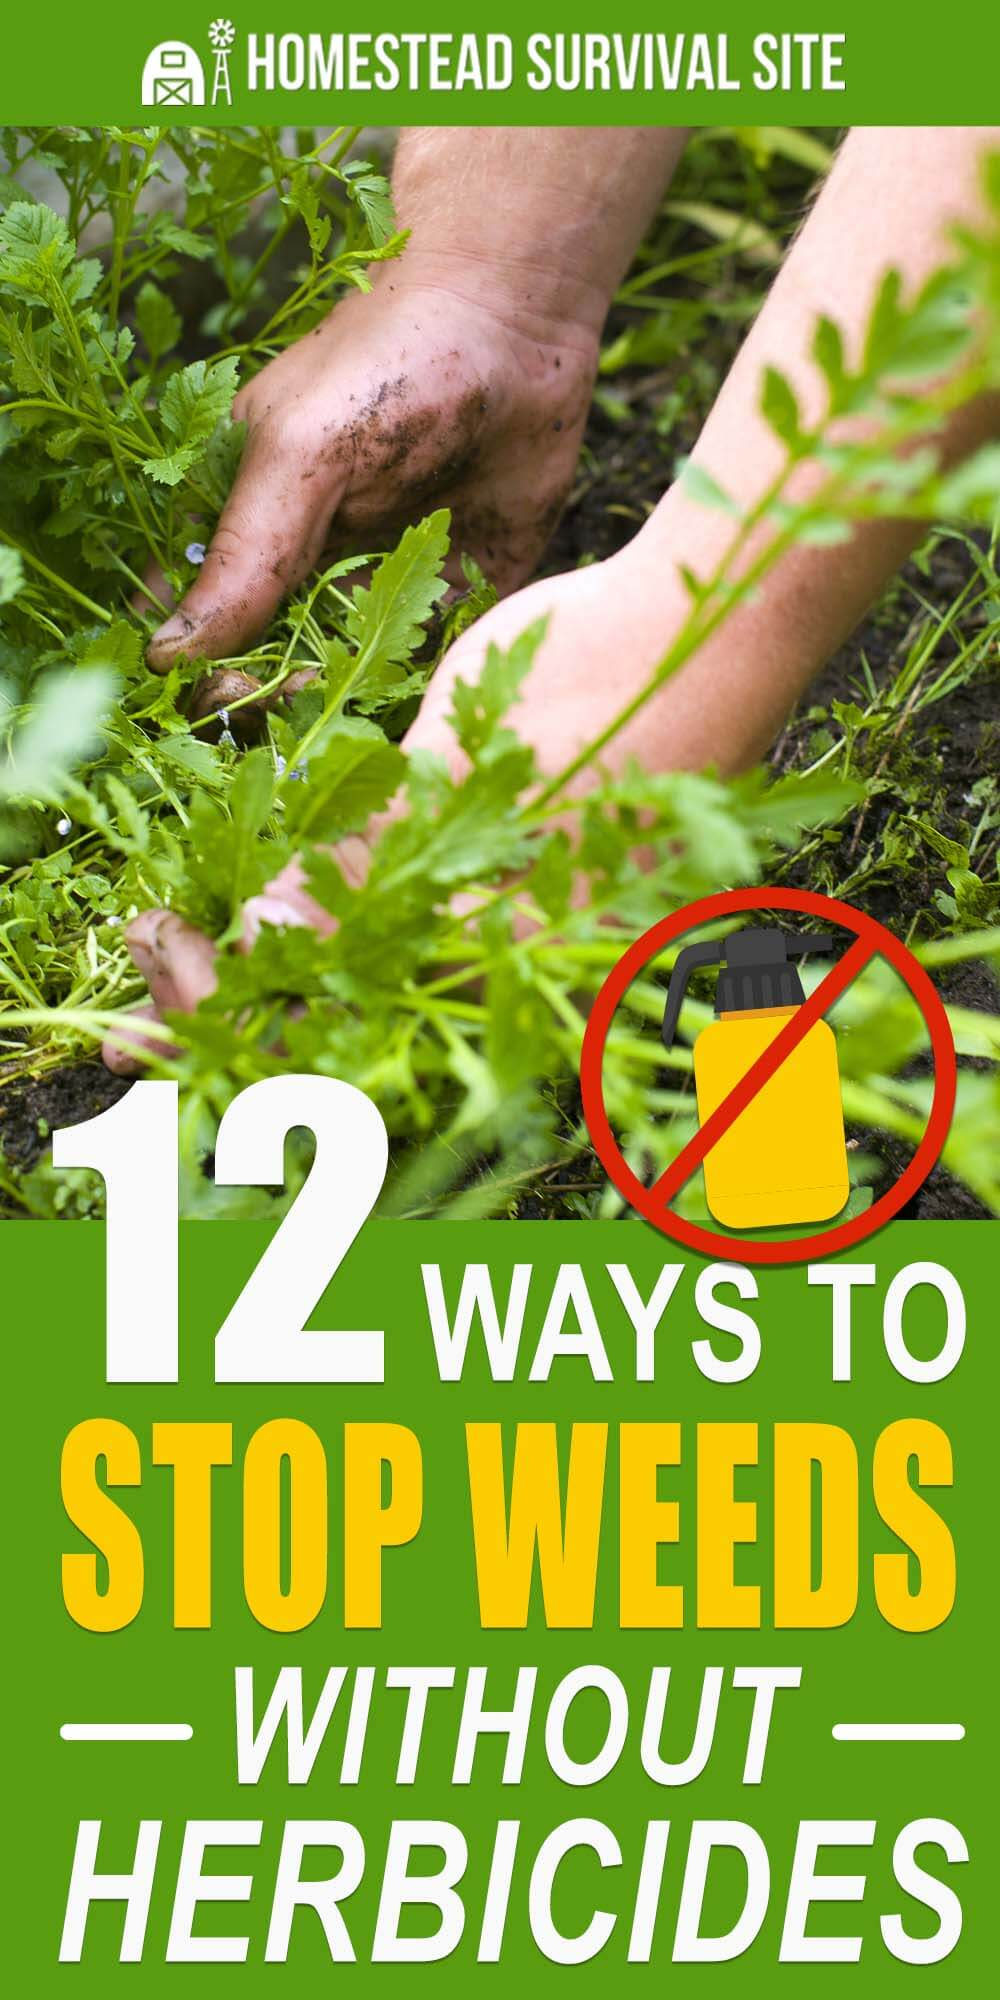 12 Ways to Stop Weeds Without Herbicides